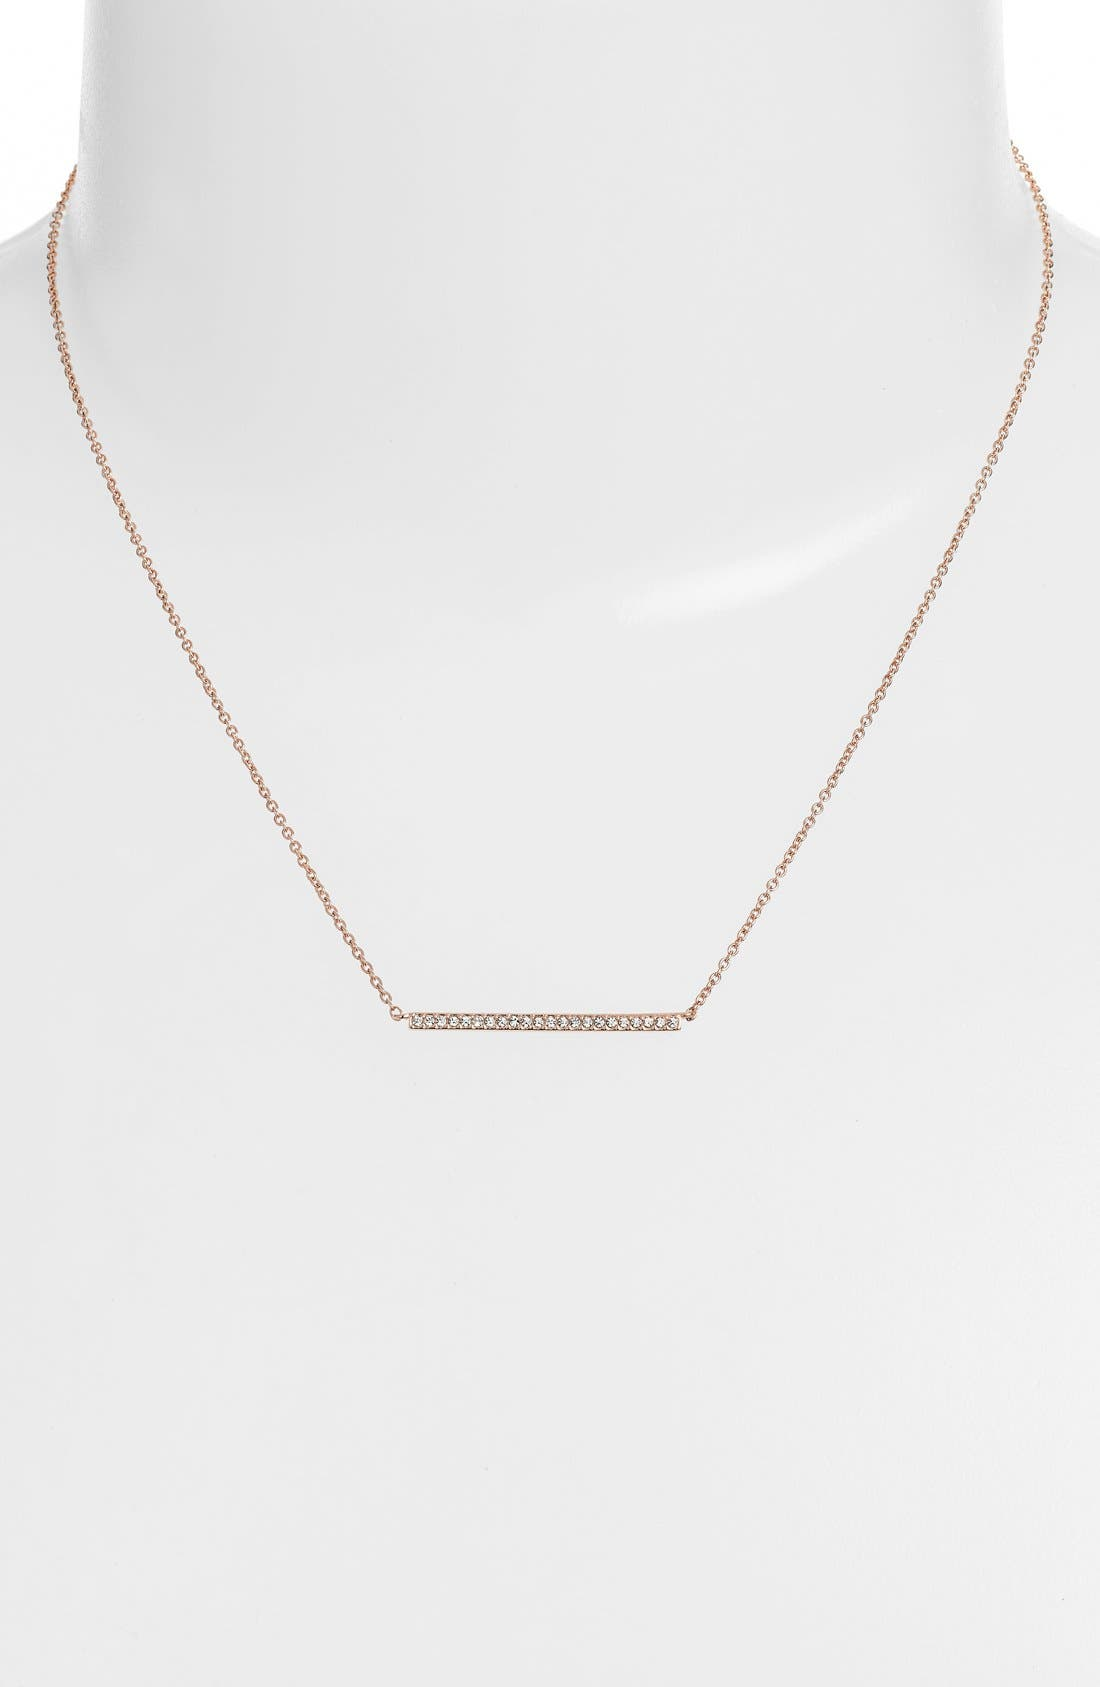 Bar Pendant Necklace,                             Alternate thumbnail 2, color,                             ROSE GOLD